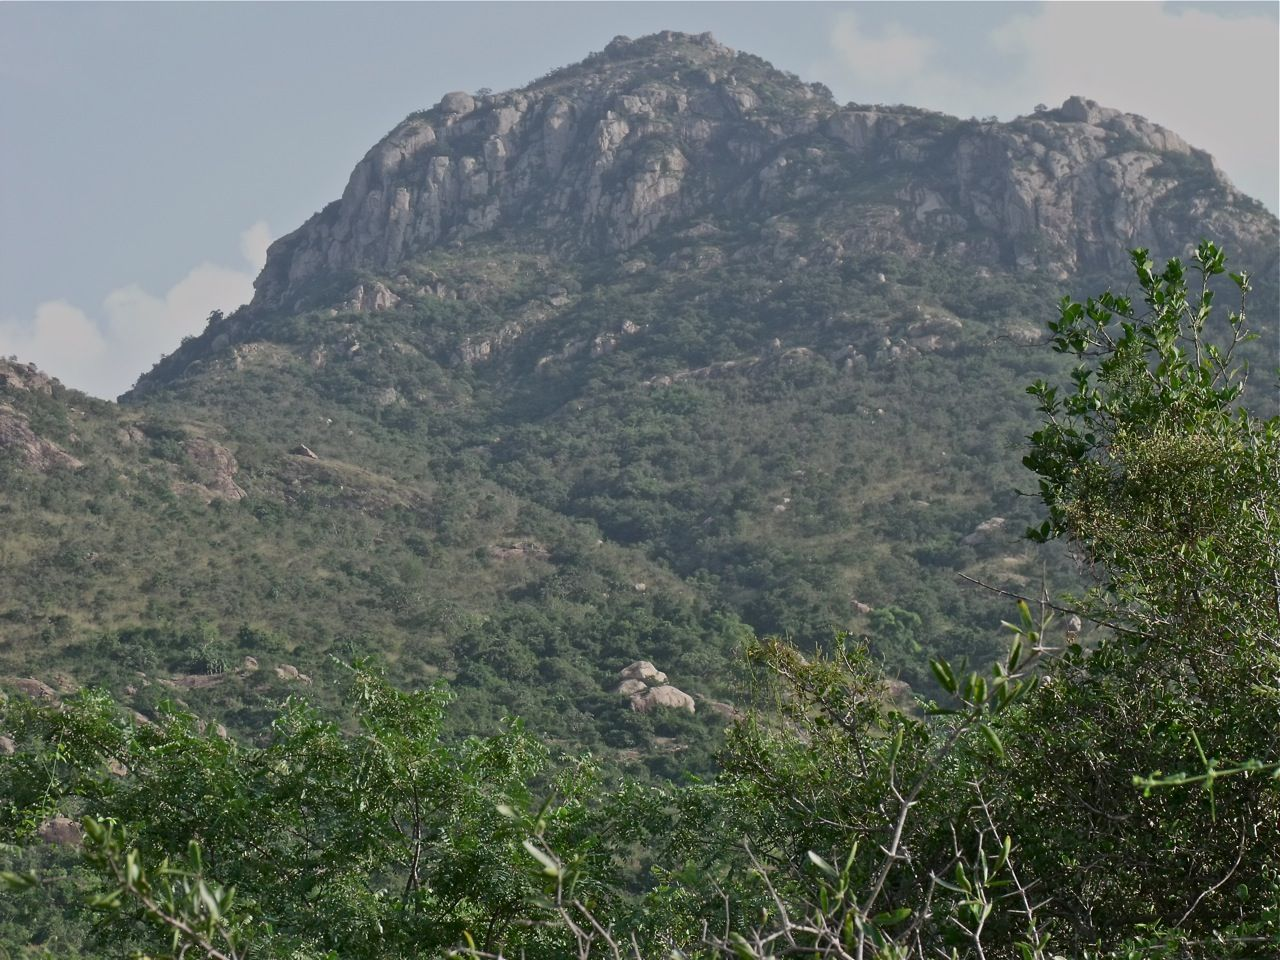 Image 9. Mount Arunachala, Tiruvannamalai, South India. (title by author) With kind permission of the Arunachala-live camera (http:/arunachala-live.com), February 17, 201?).